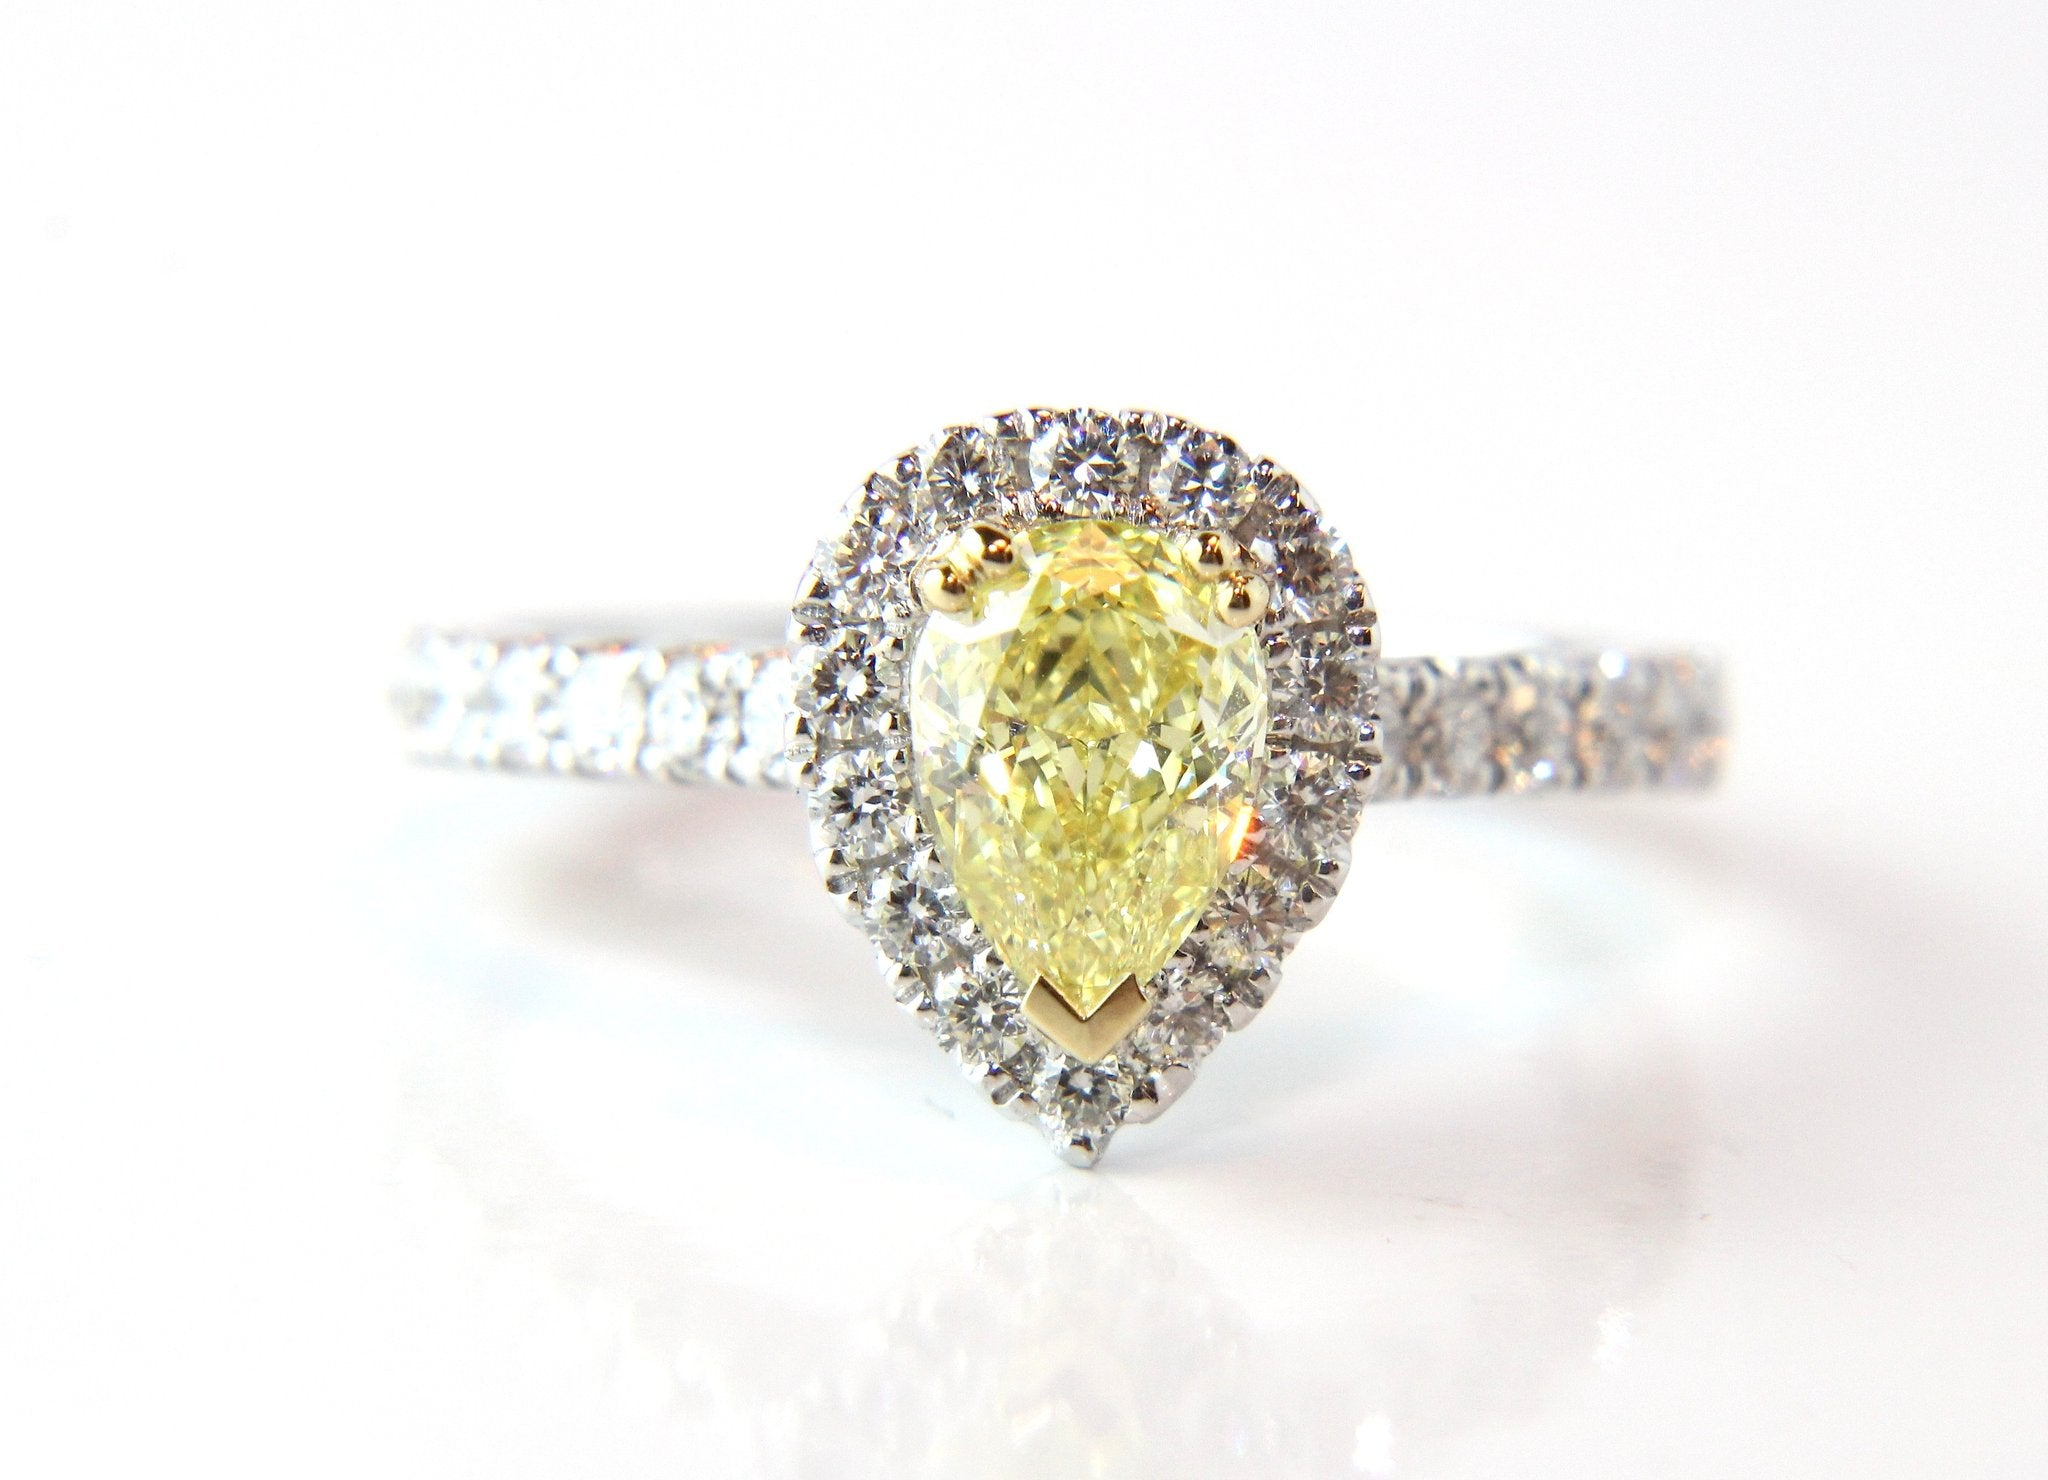 GIA Certified Yellow Diamond Specialist Dublin